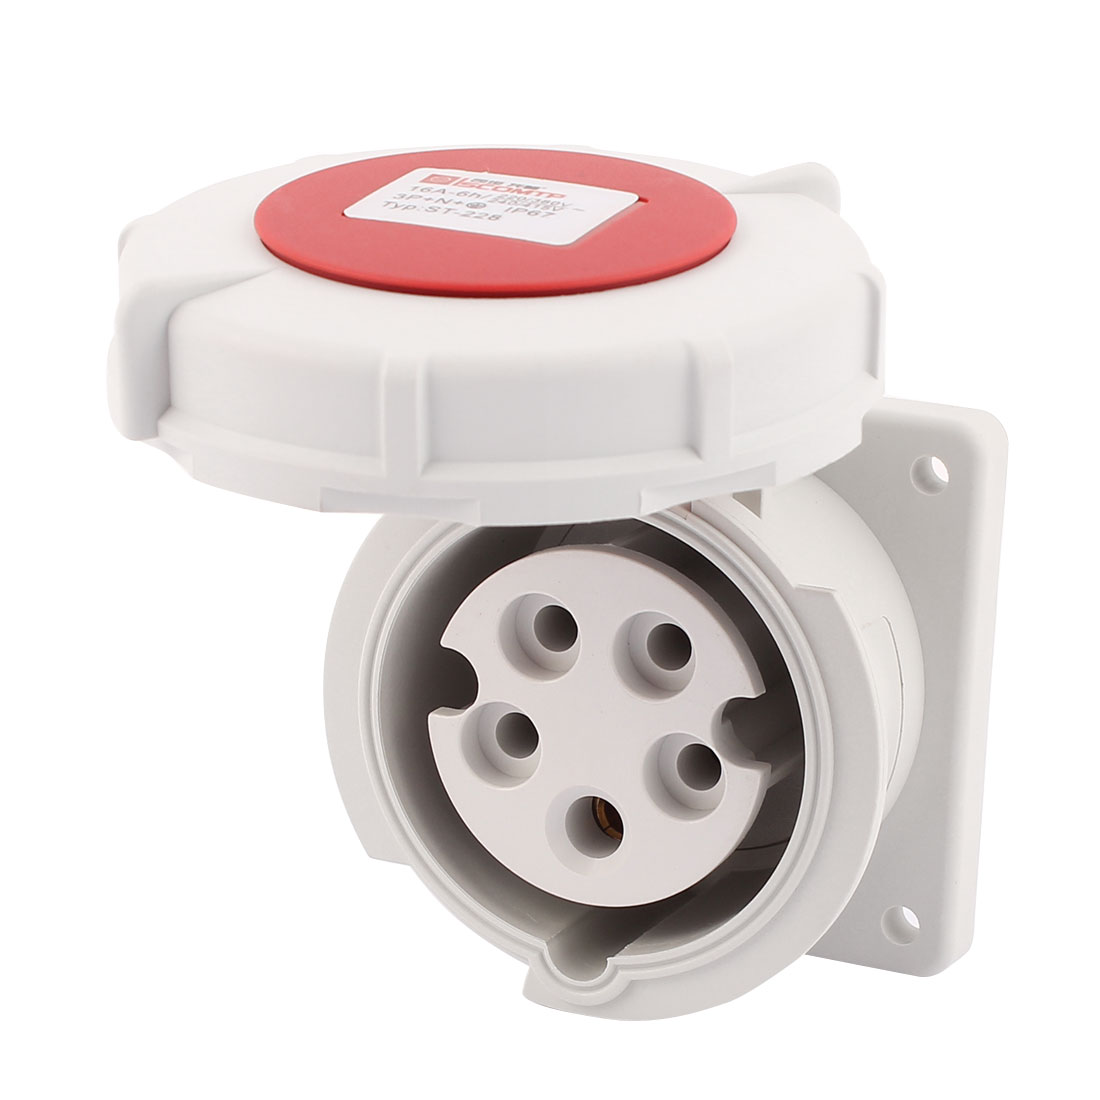 AC 240V-415V 16A IP67 3P+N+E 5-Terminal Female Industrial Straight Socket